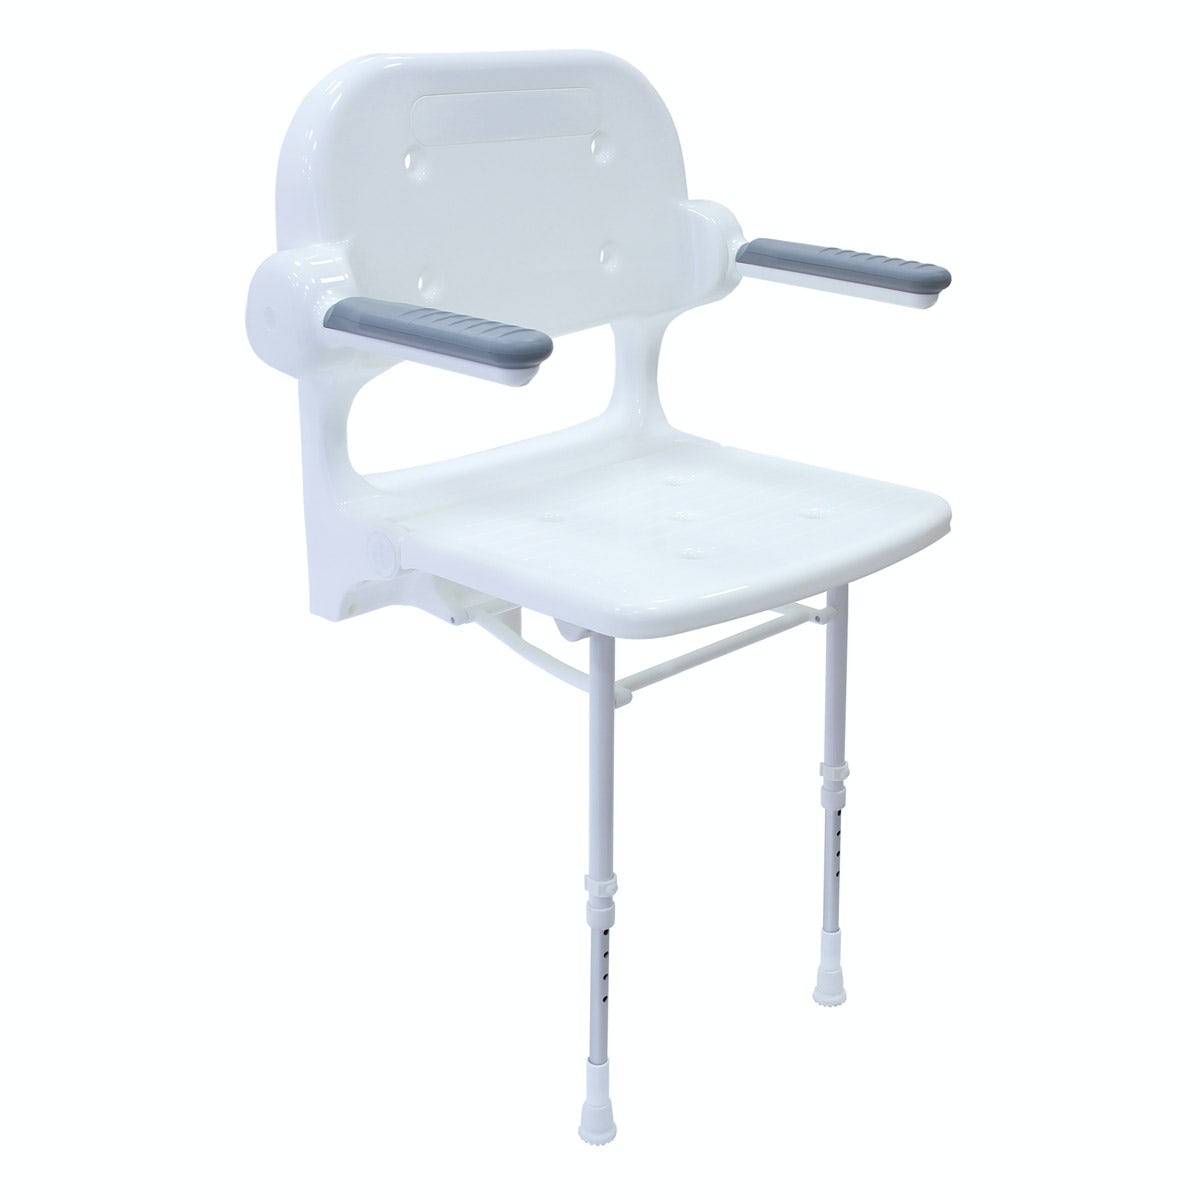 AKW 2000 series folding shower seat with back and arms